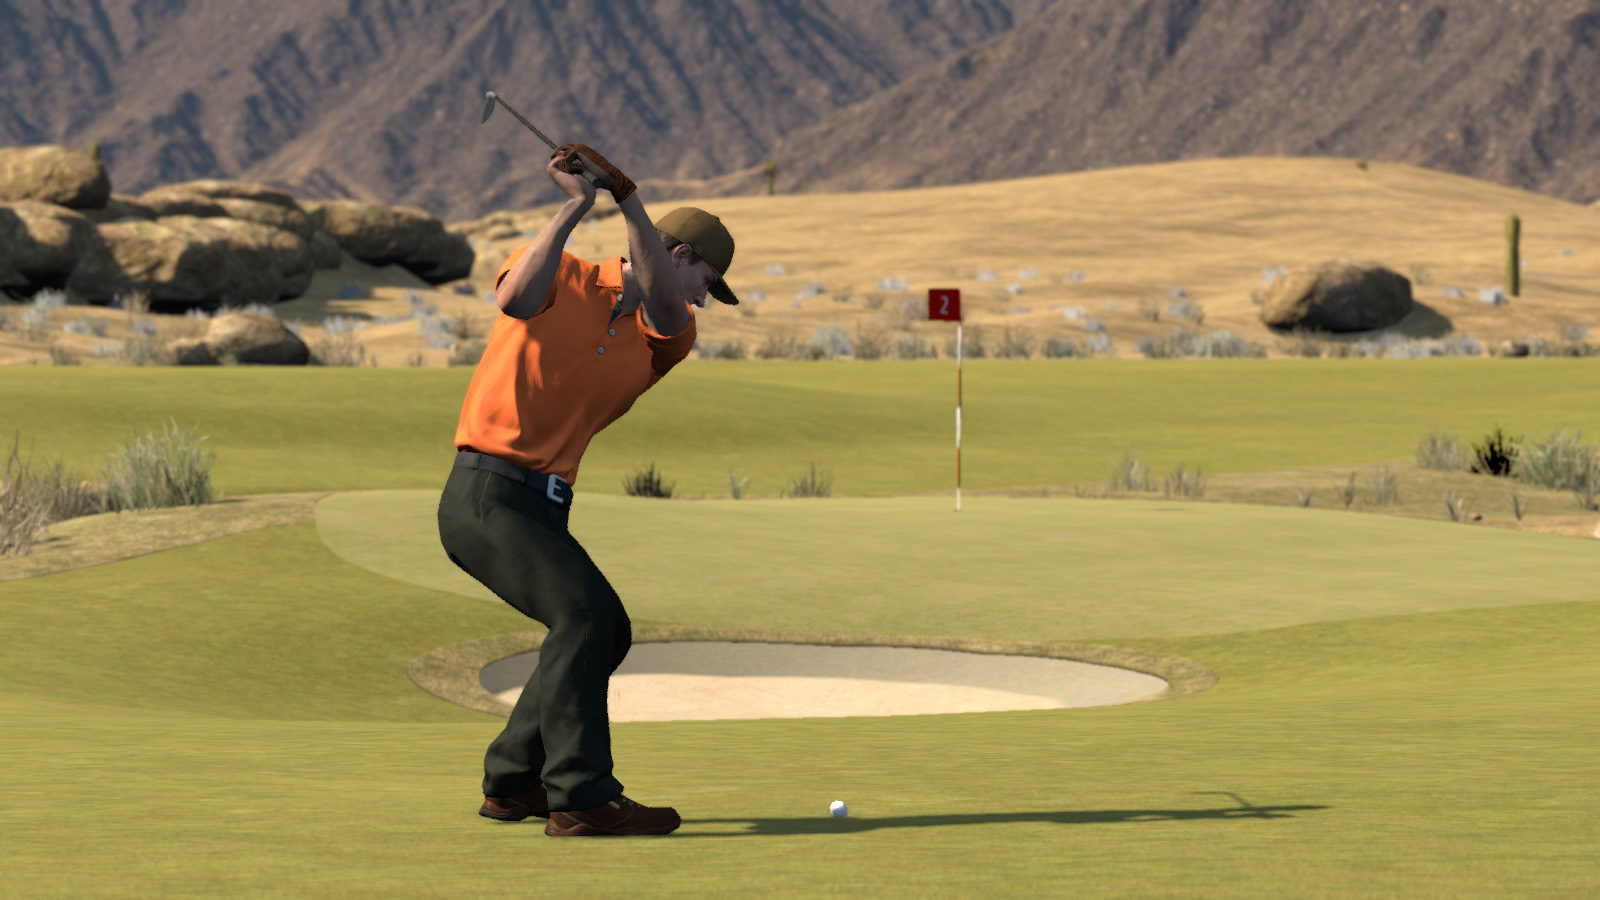 The Golf Club Coming To Pc Ps4 And Xbox One In Northern